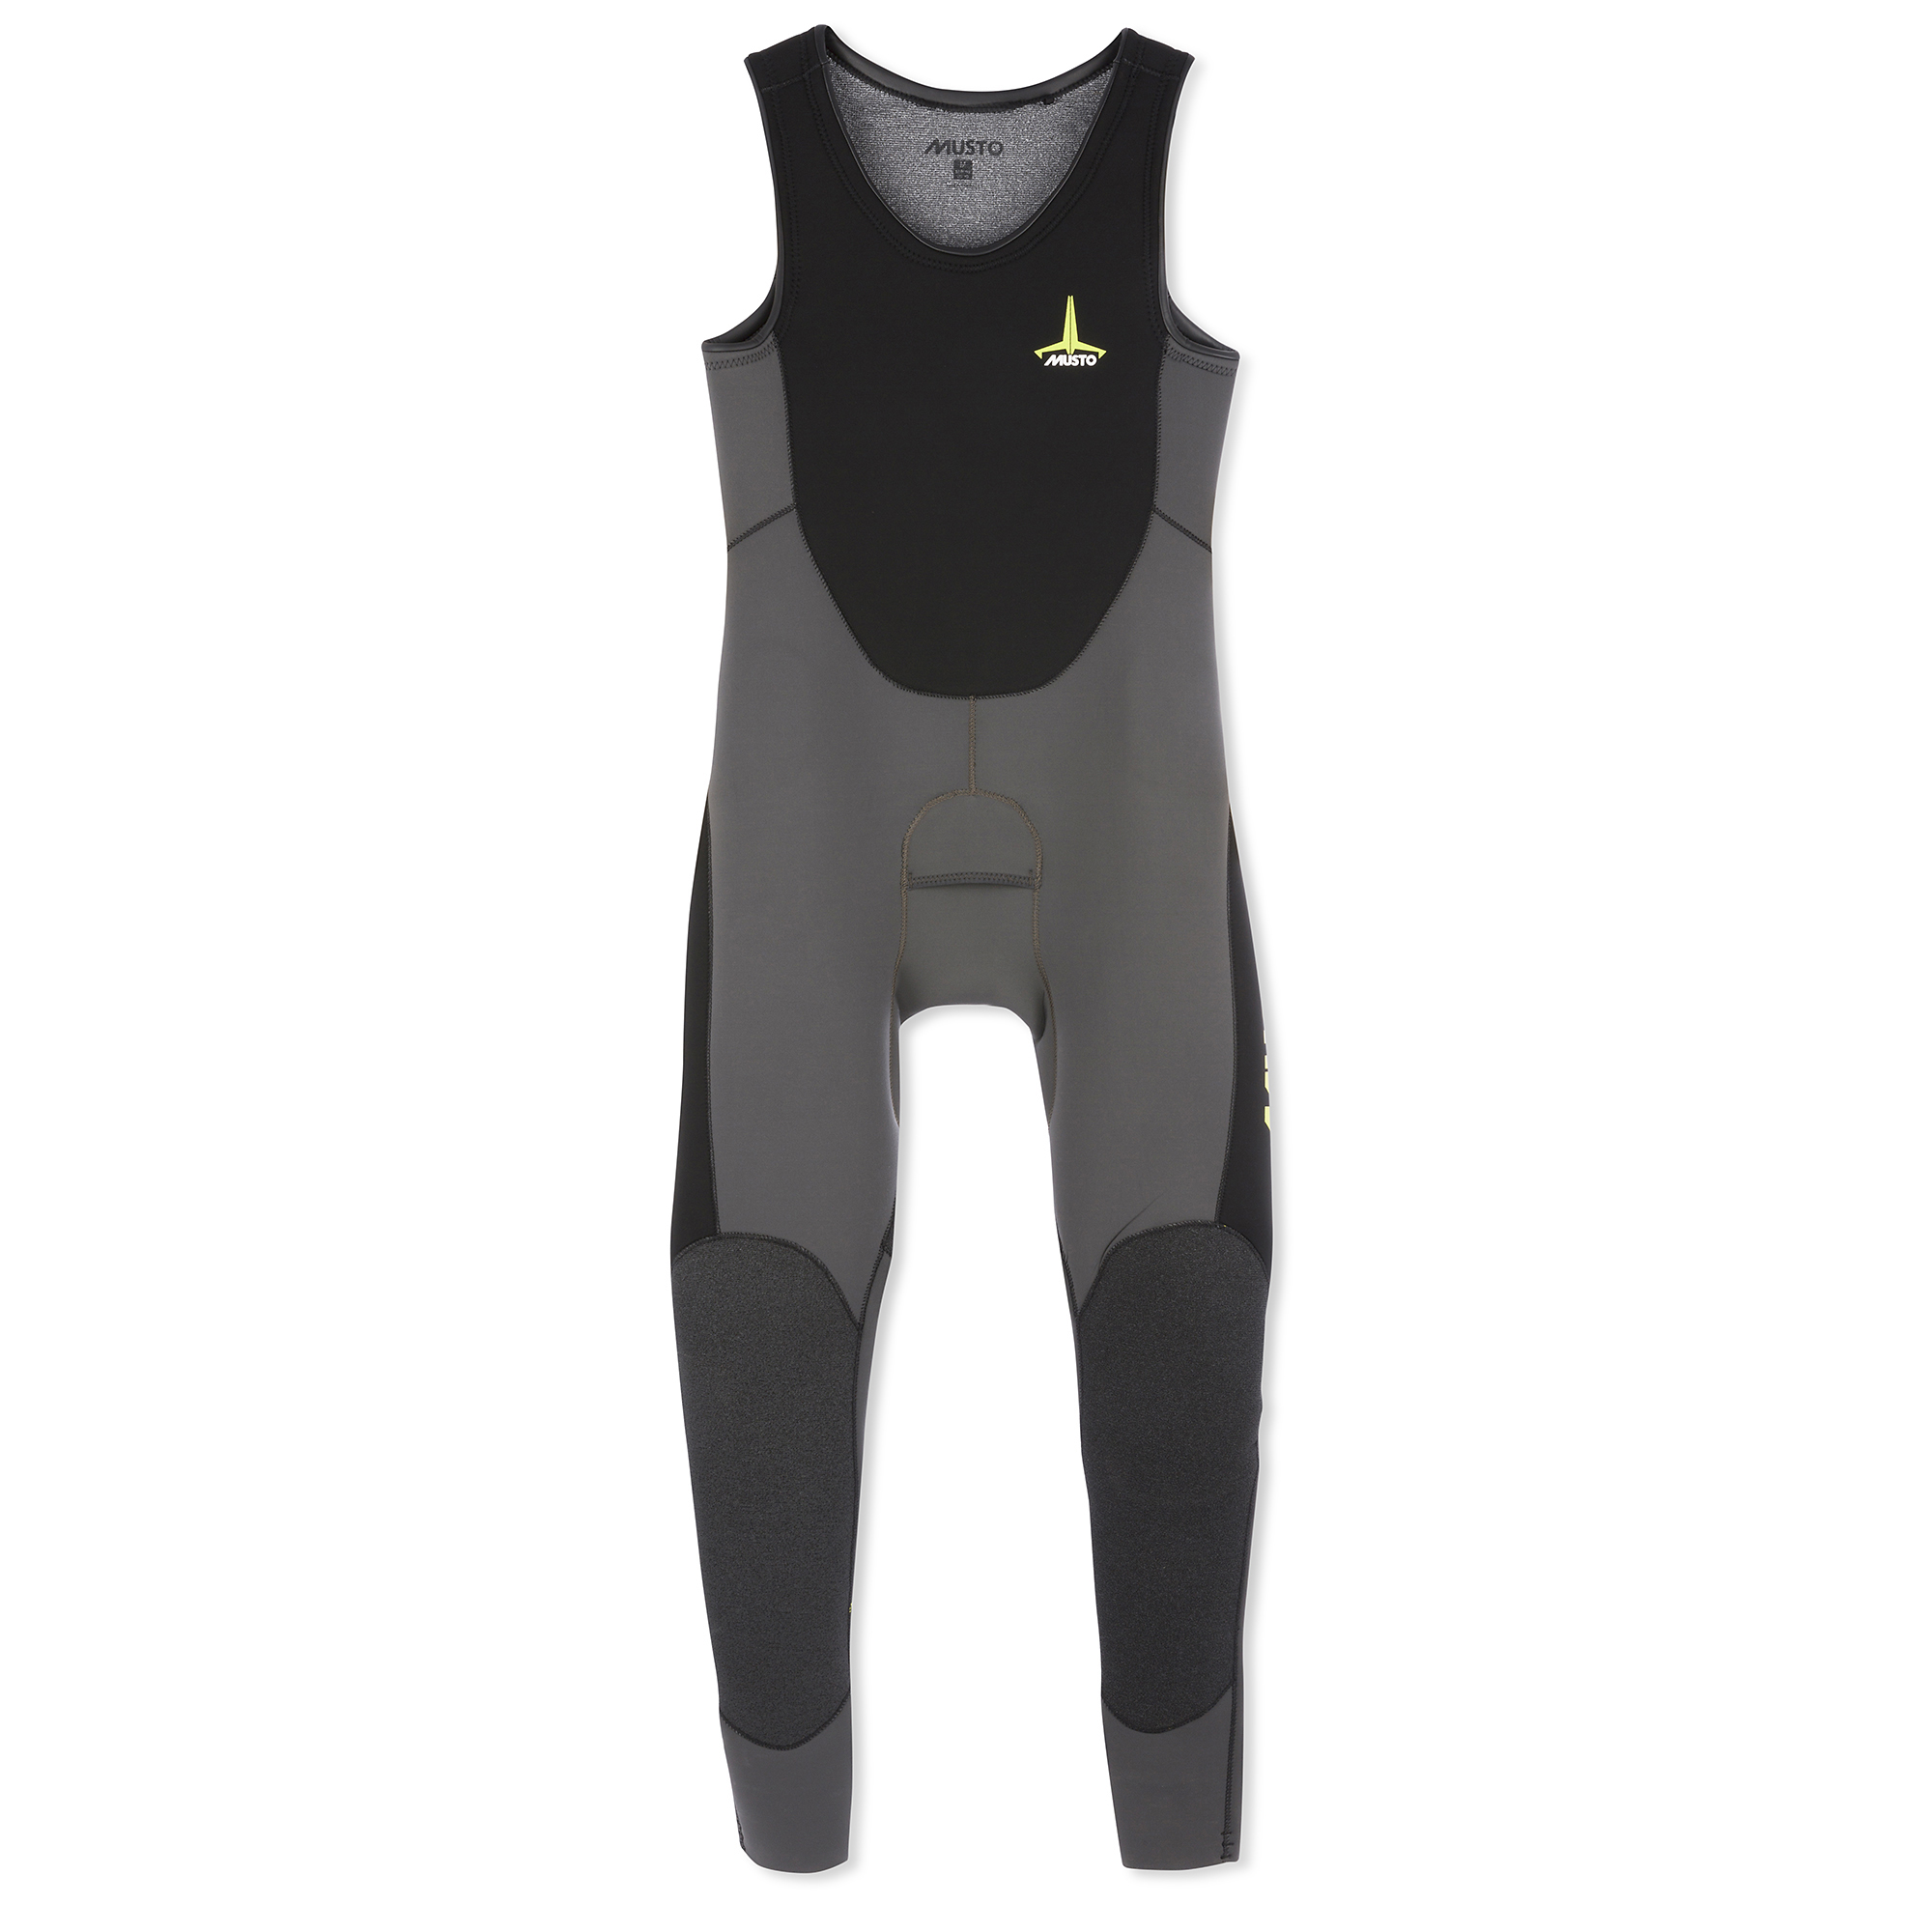 MUSTO FOILING THERMOHOT IMPACT WETSUIT (SMWT003)